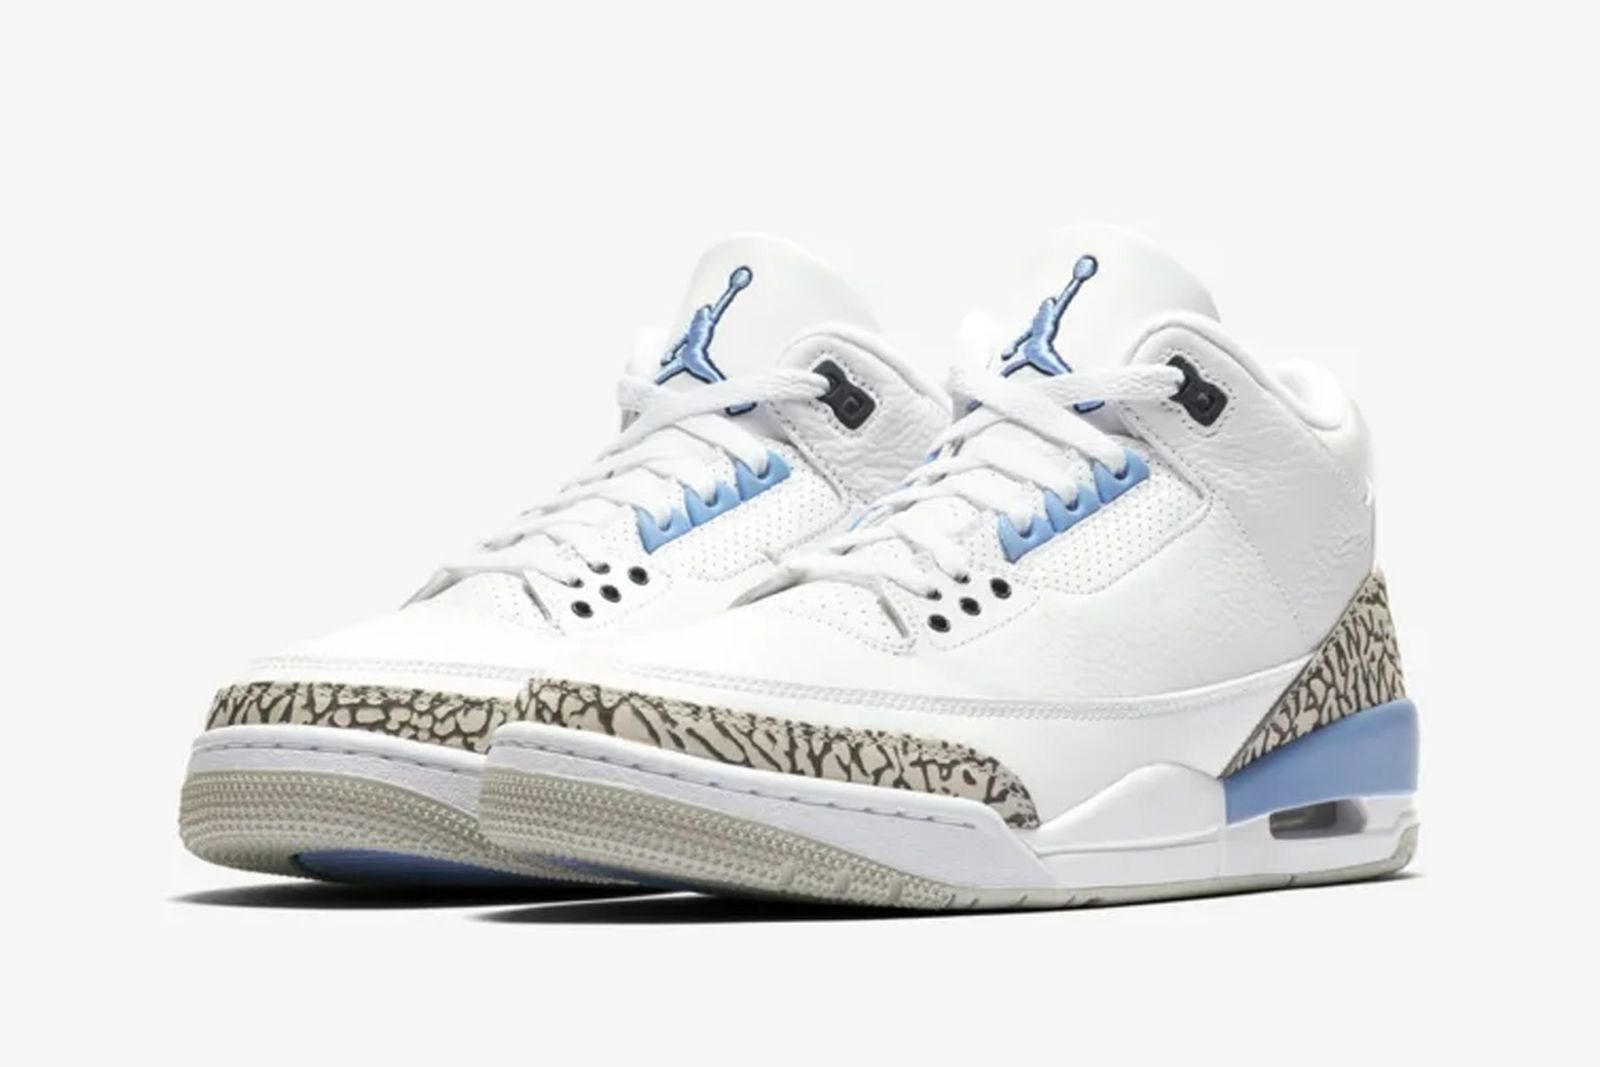 """Nike Air Jordan 3 """"UNC"""": Official Images & Where to Buy Tomorrow"""